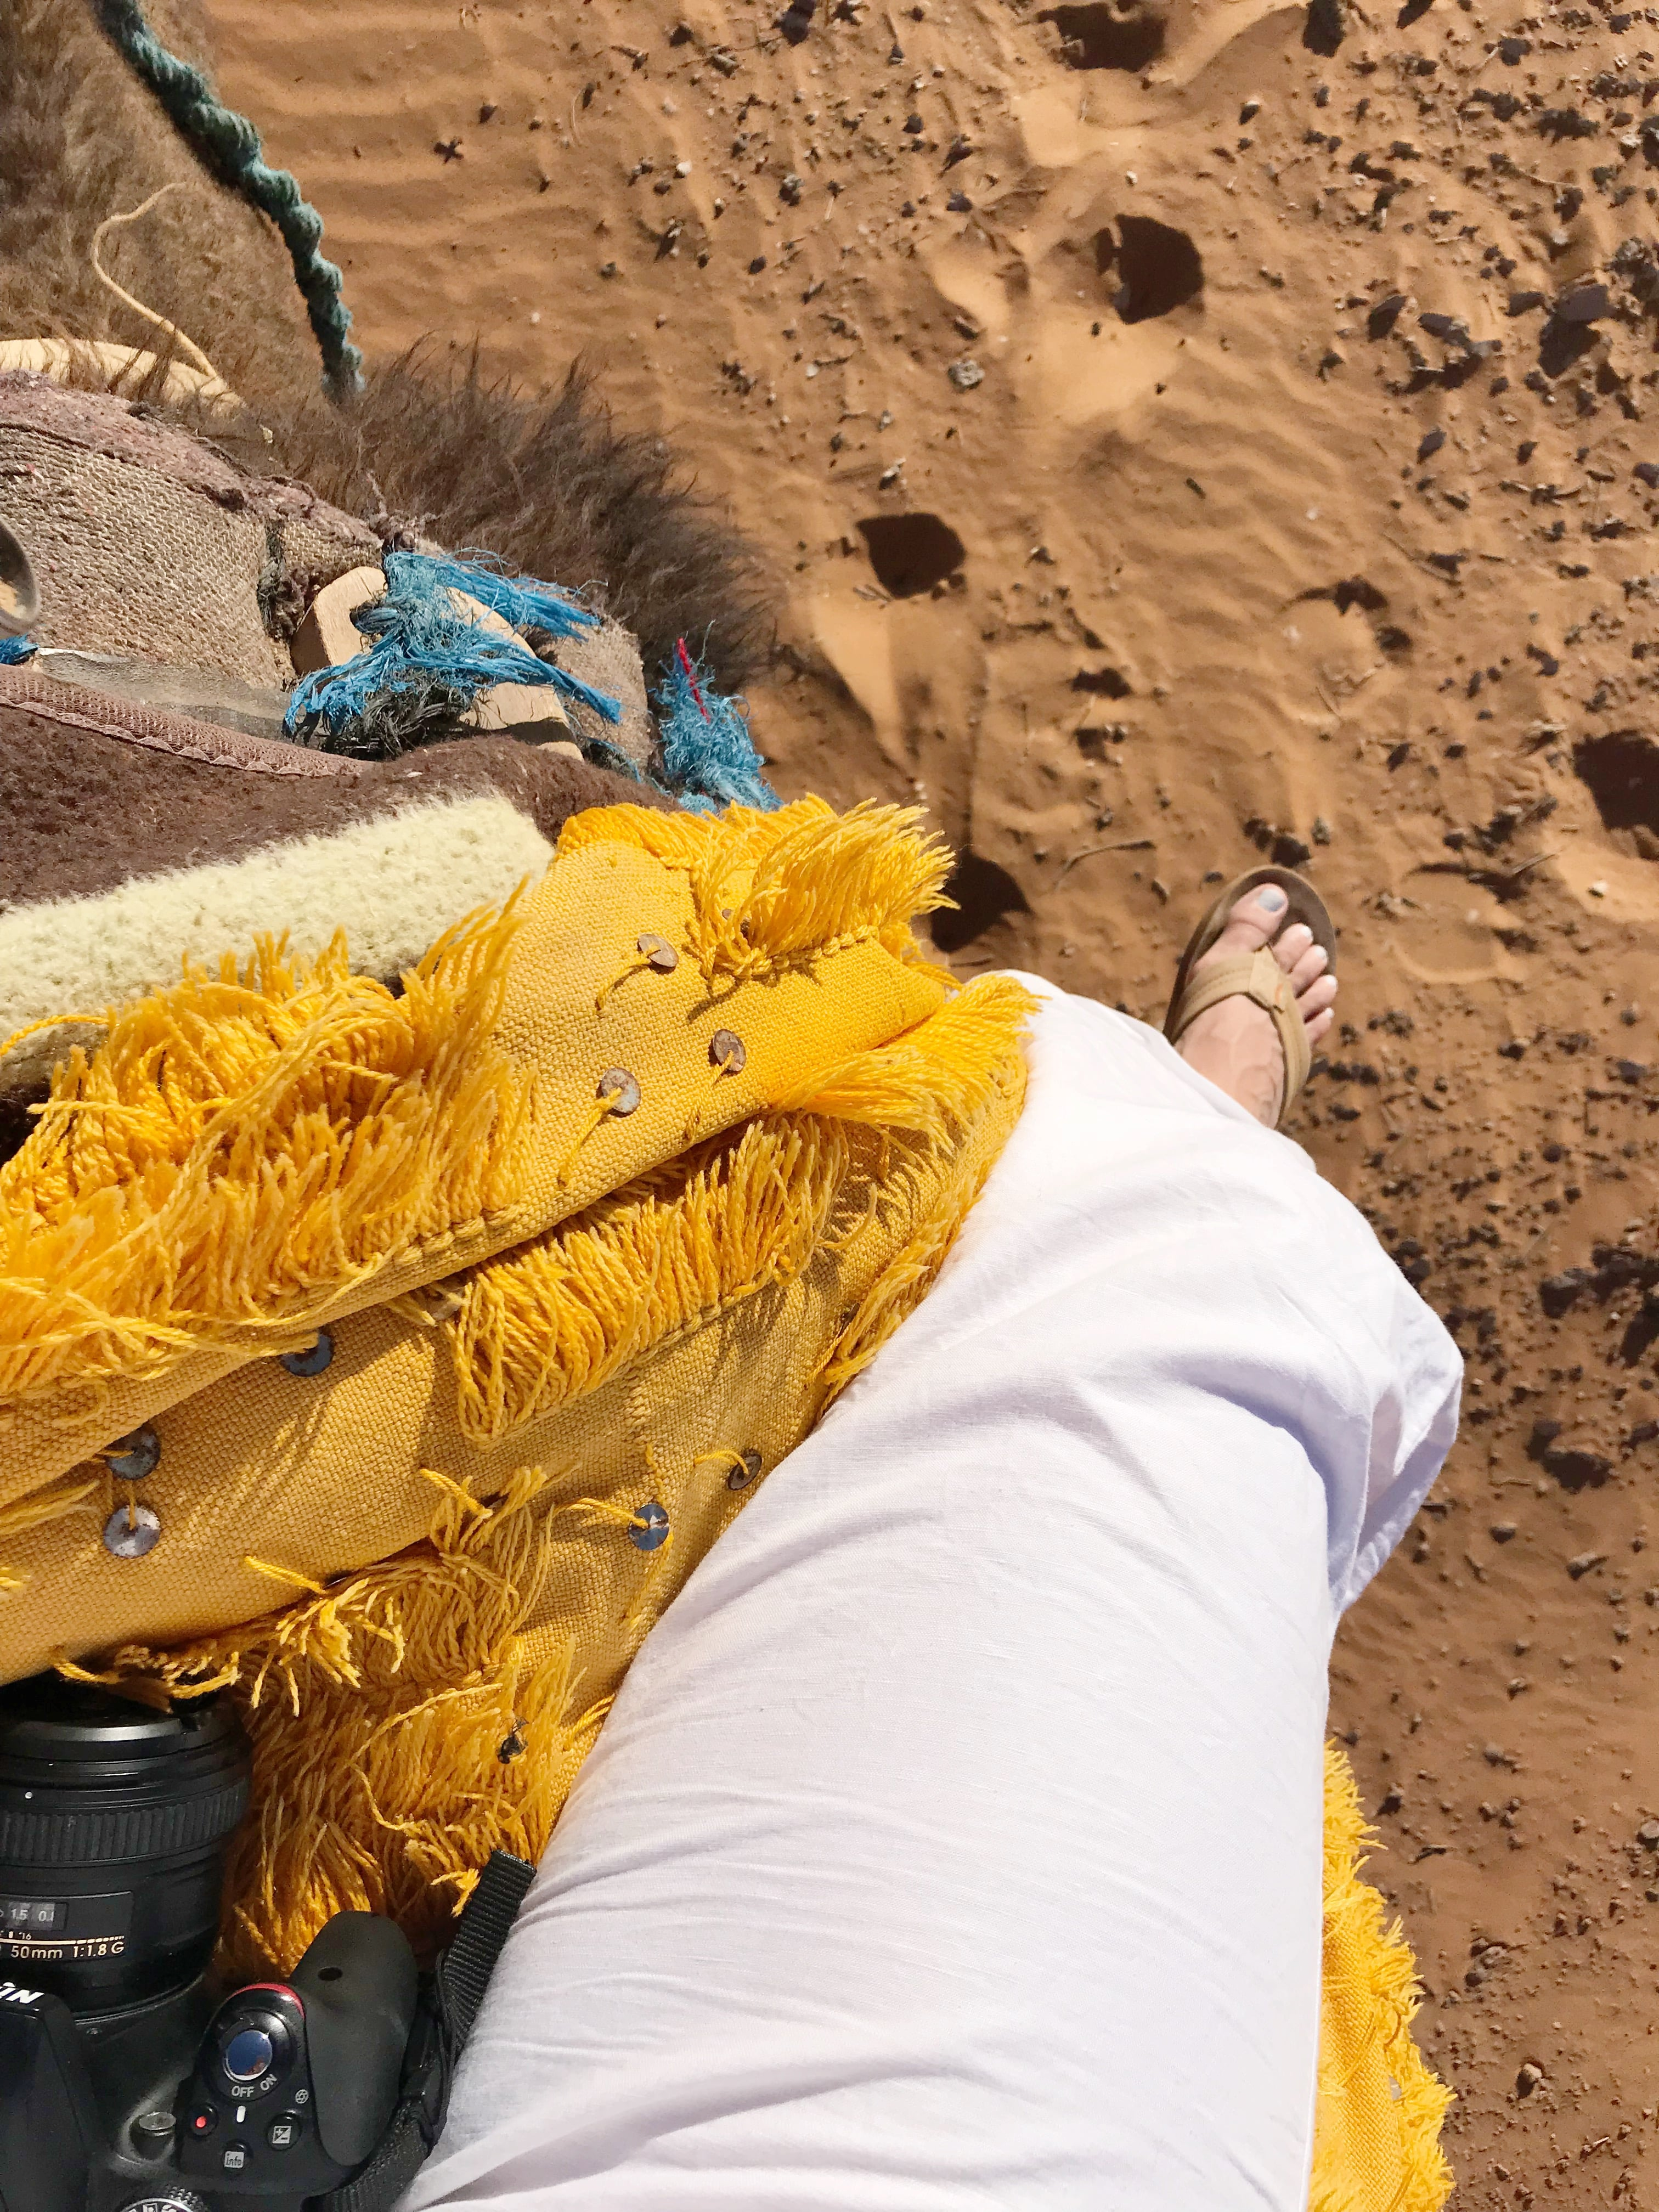 5 THINGS TO KNOW BEFORE YOU TRAVEL TO THE SAHARA DESERT | Morocco Desert Camp - Desert Luxury Camp Morocco - Luxury Desert Camp Morocco - Morocco Sahara Desert Camp - Desert Camp Merzouga Morocco - Erg Chebbi Camp Morocco - Camping Morocco - Best Luxury Desert Camp Morocco - Sahara Desert Camp - Dar Jnan Tiouira - Erg Chebbi Sand Dunes - Morocco Travel Blog - #morocco #saharadesert #travelblog